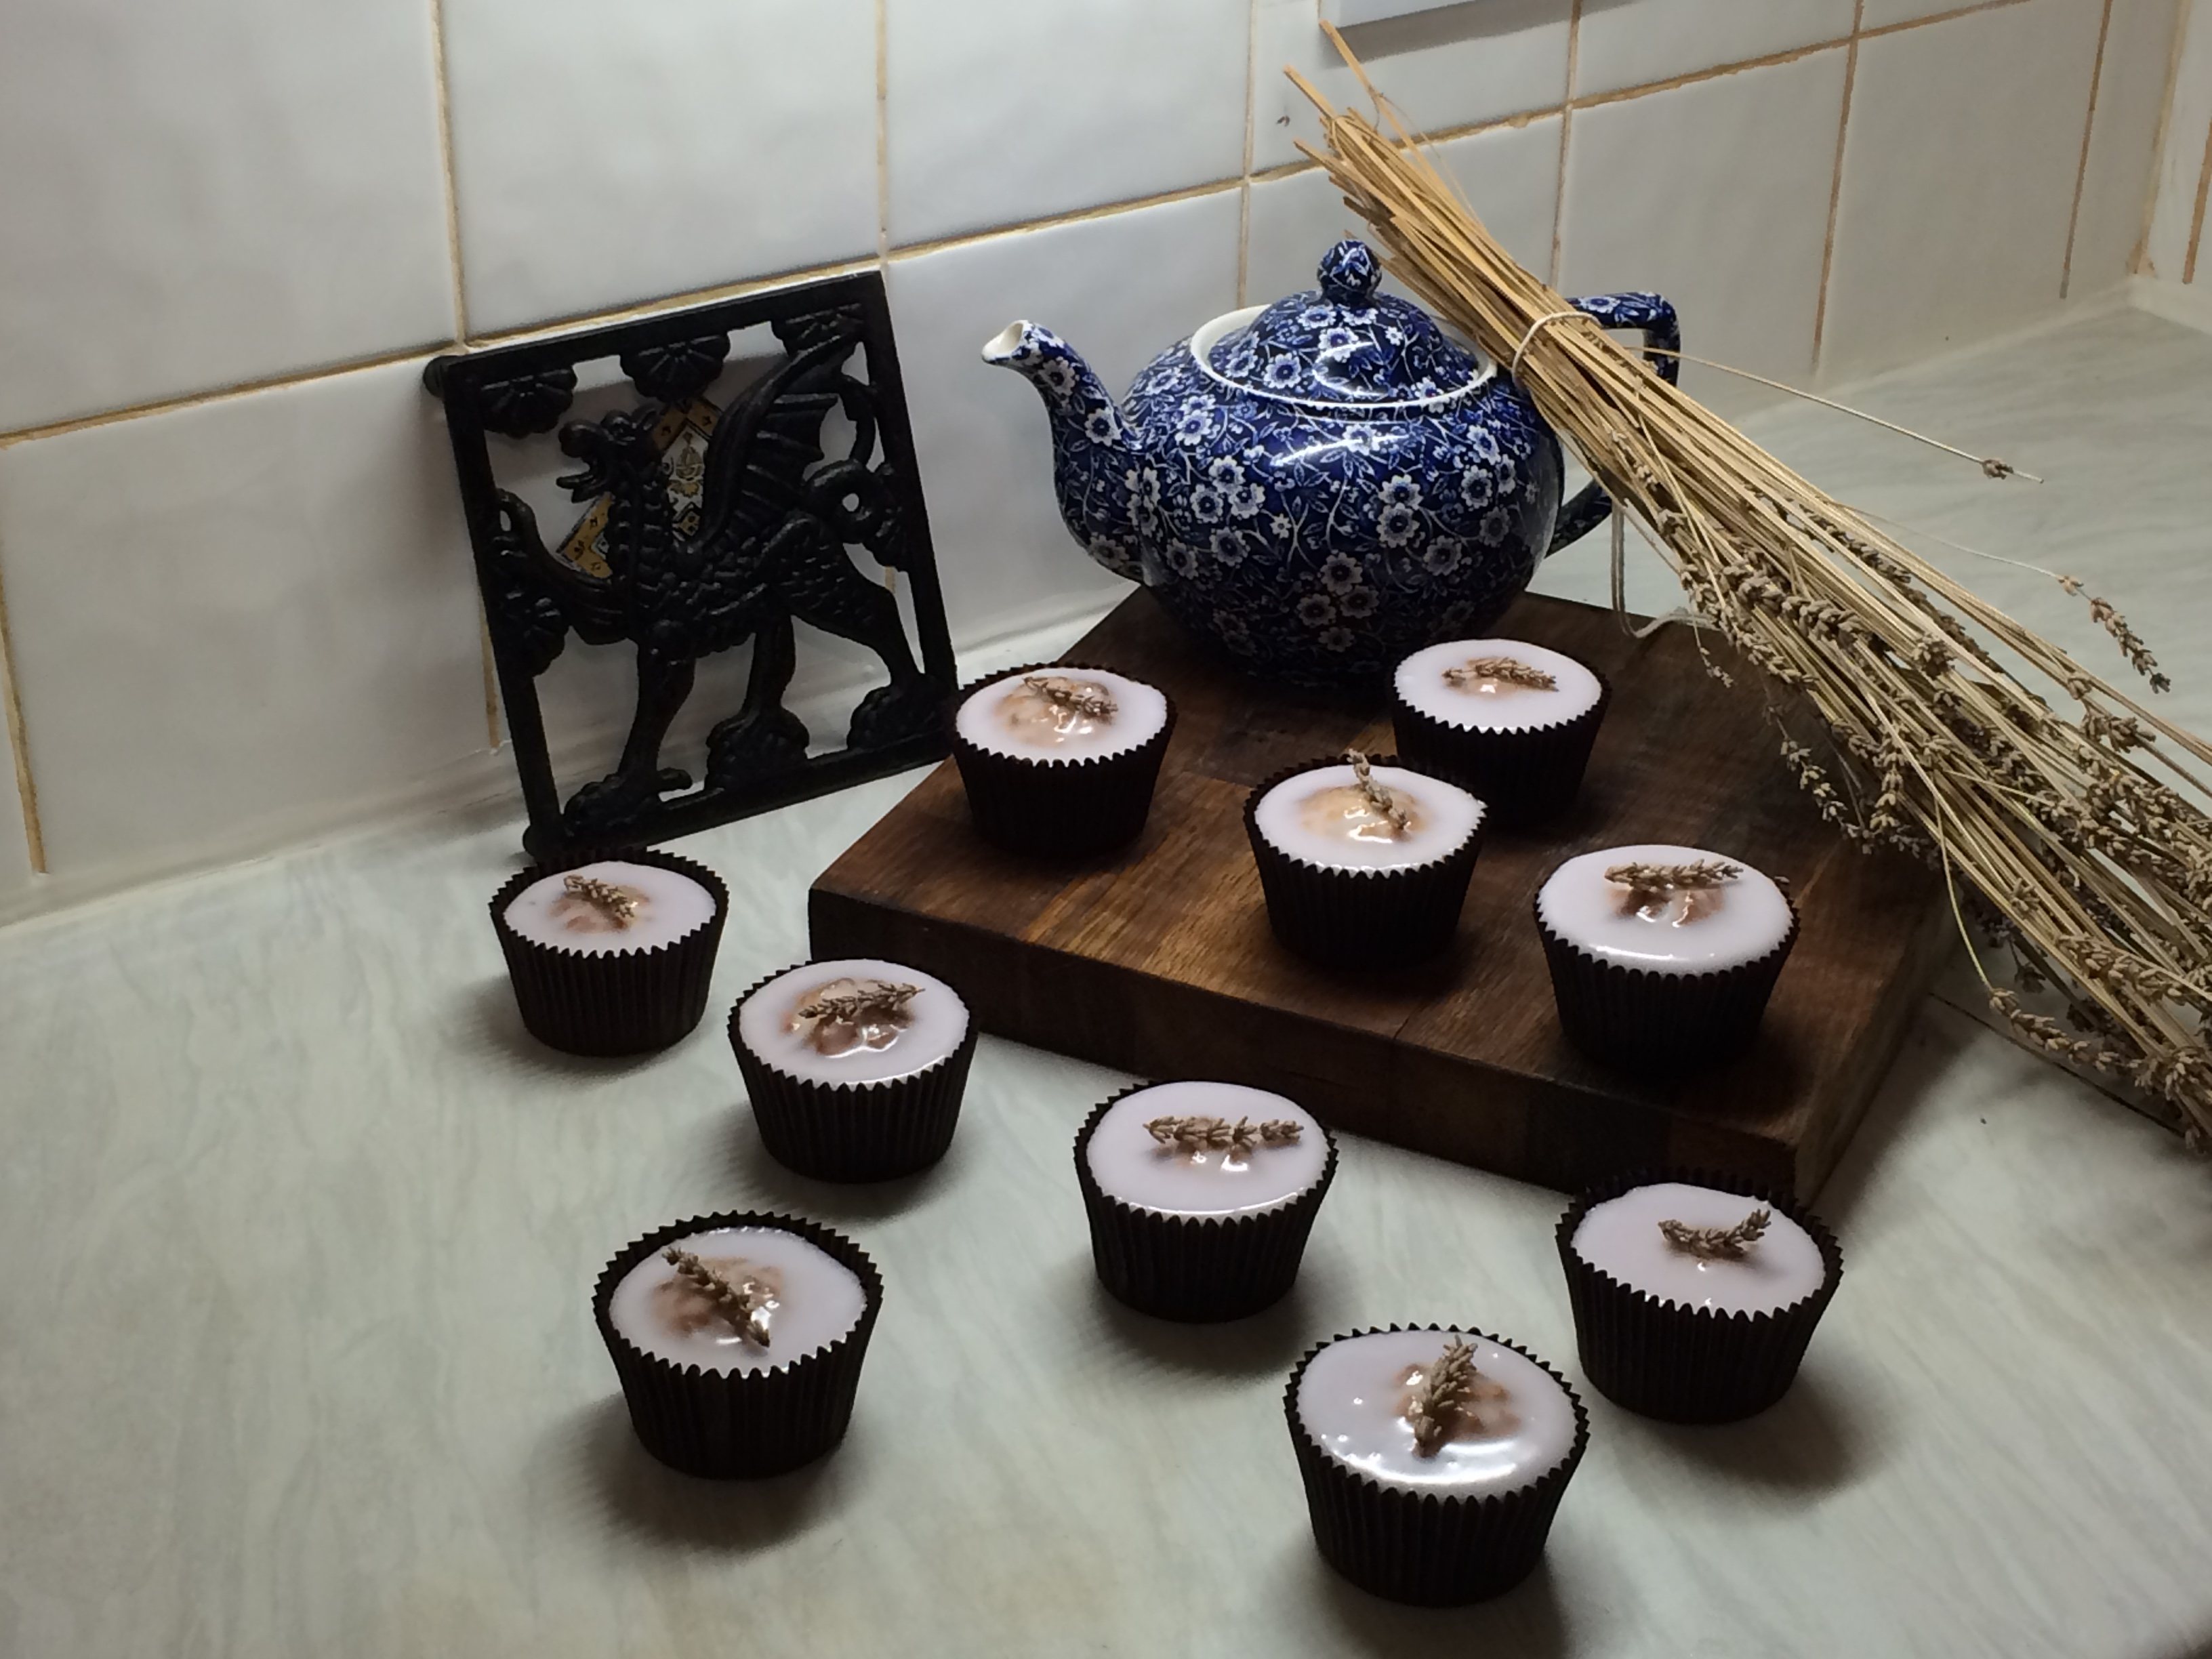 Recipe of the month- Lavender Cakes